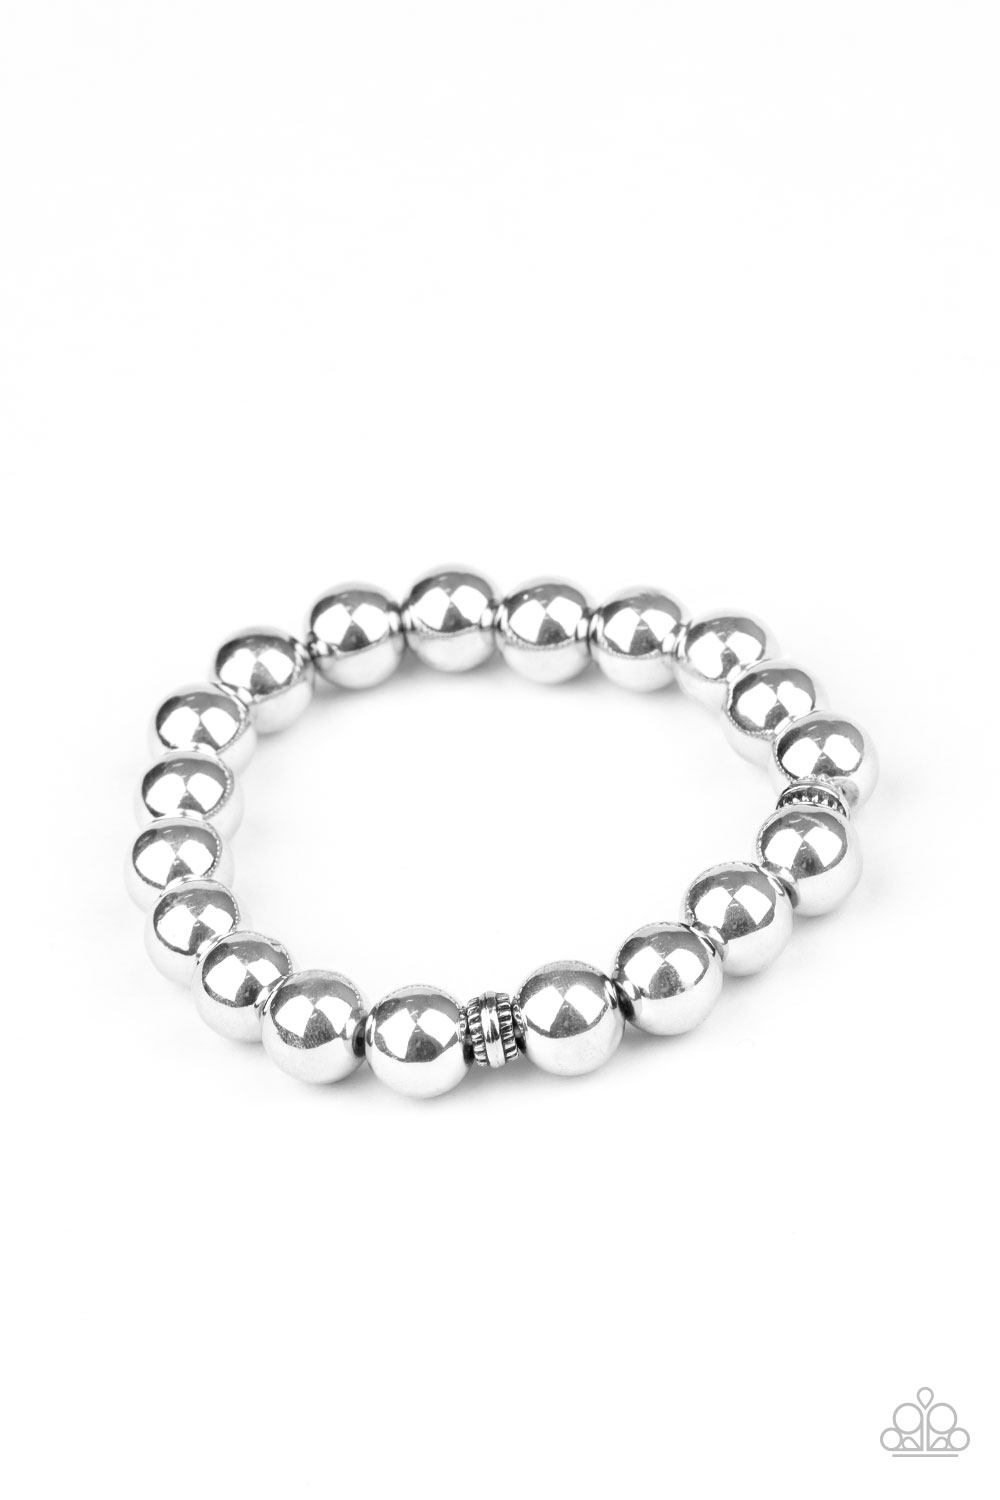 Paparazzi Accessories:  Resilience - Silver (2388)